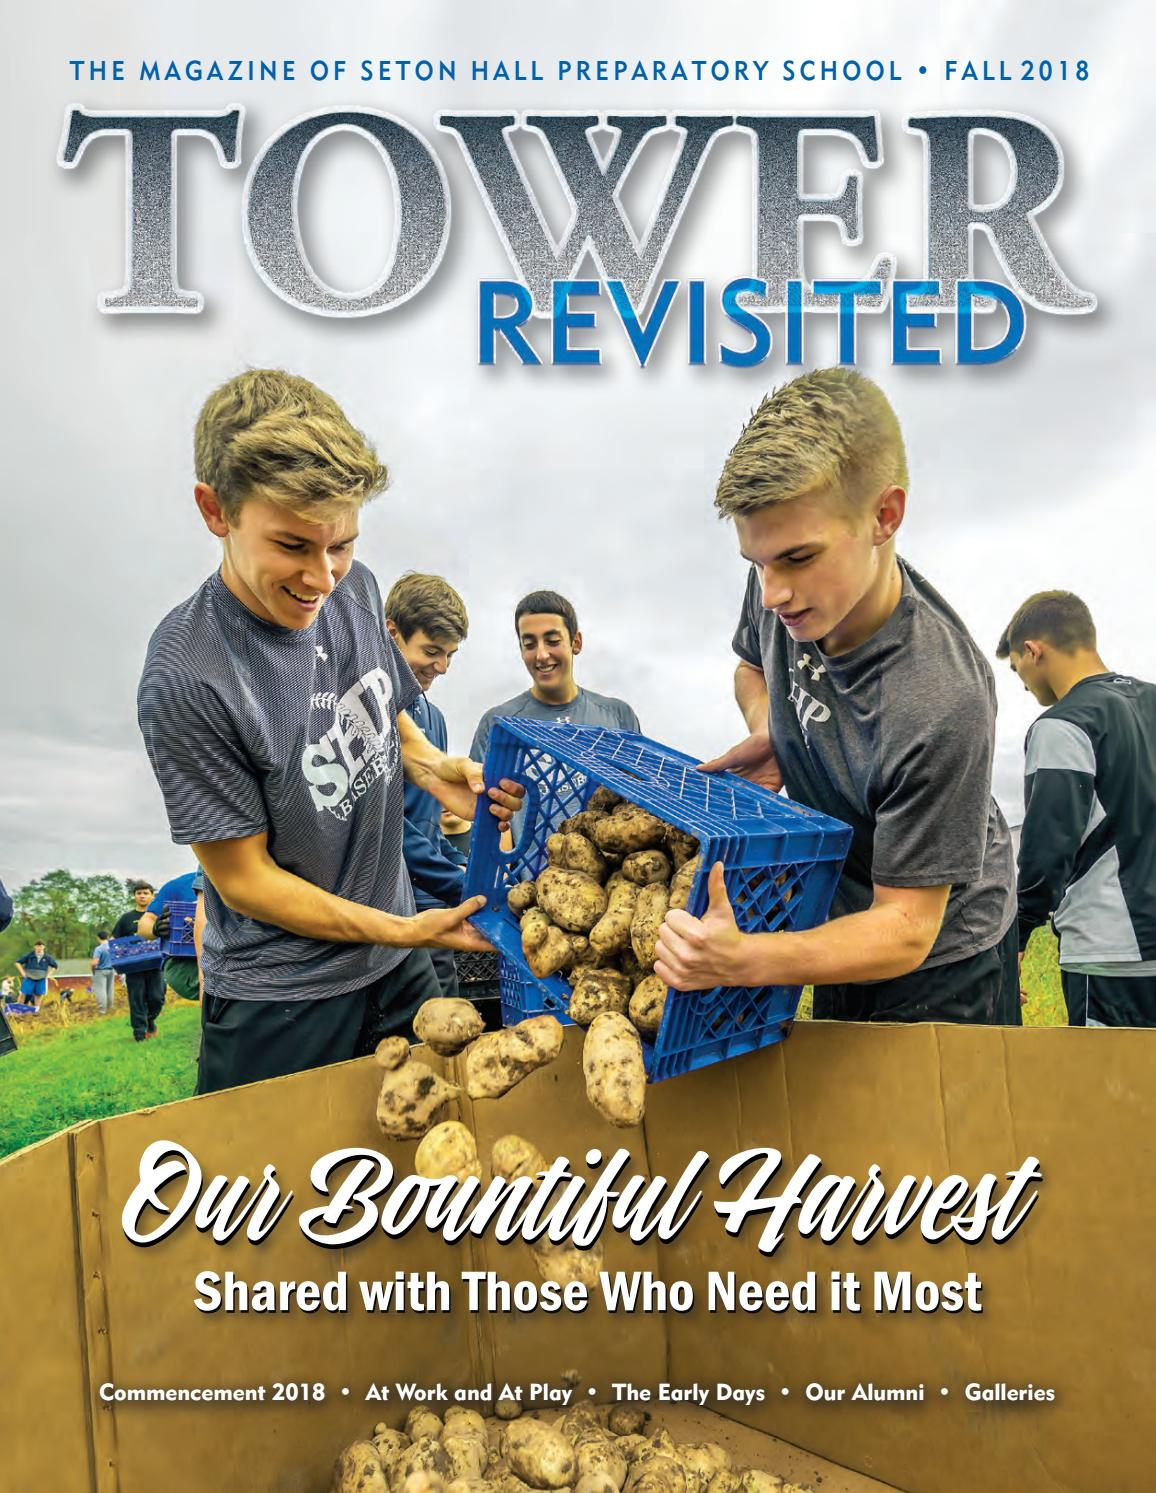 895eb4813d Fall 2018 Tower Revisited by Richard Morris - issuu